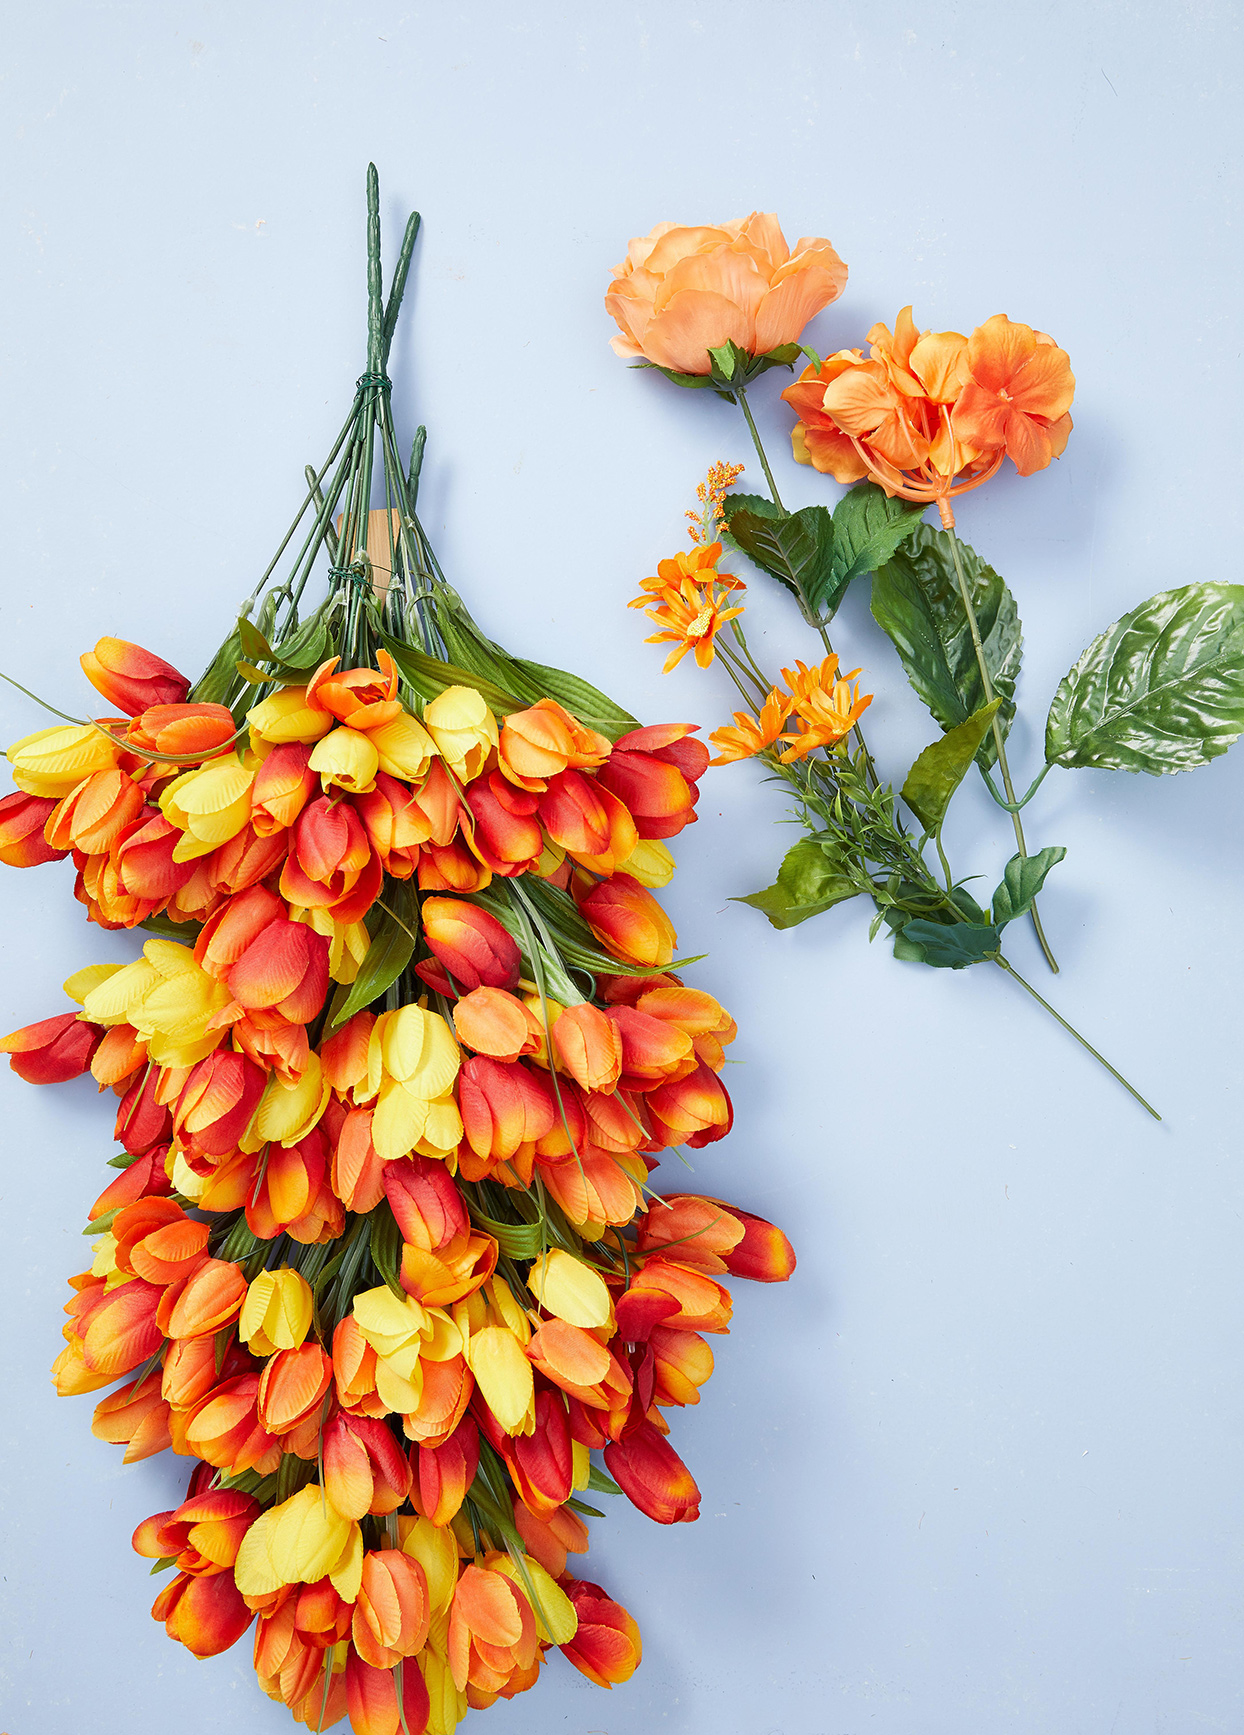 hanging bouquet of tulips and other orange flowers